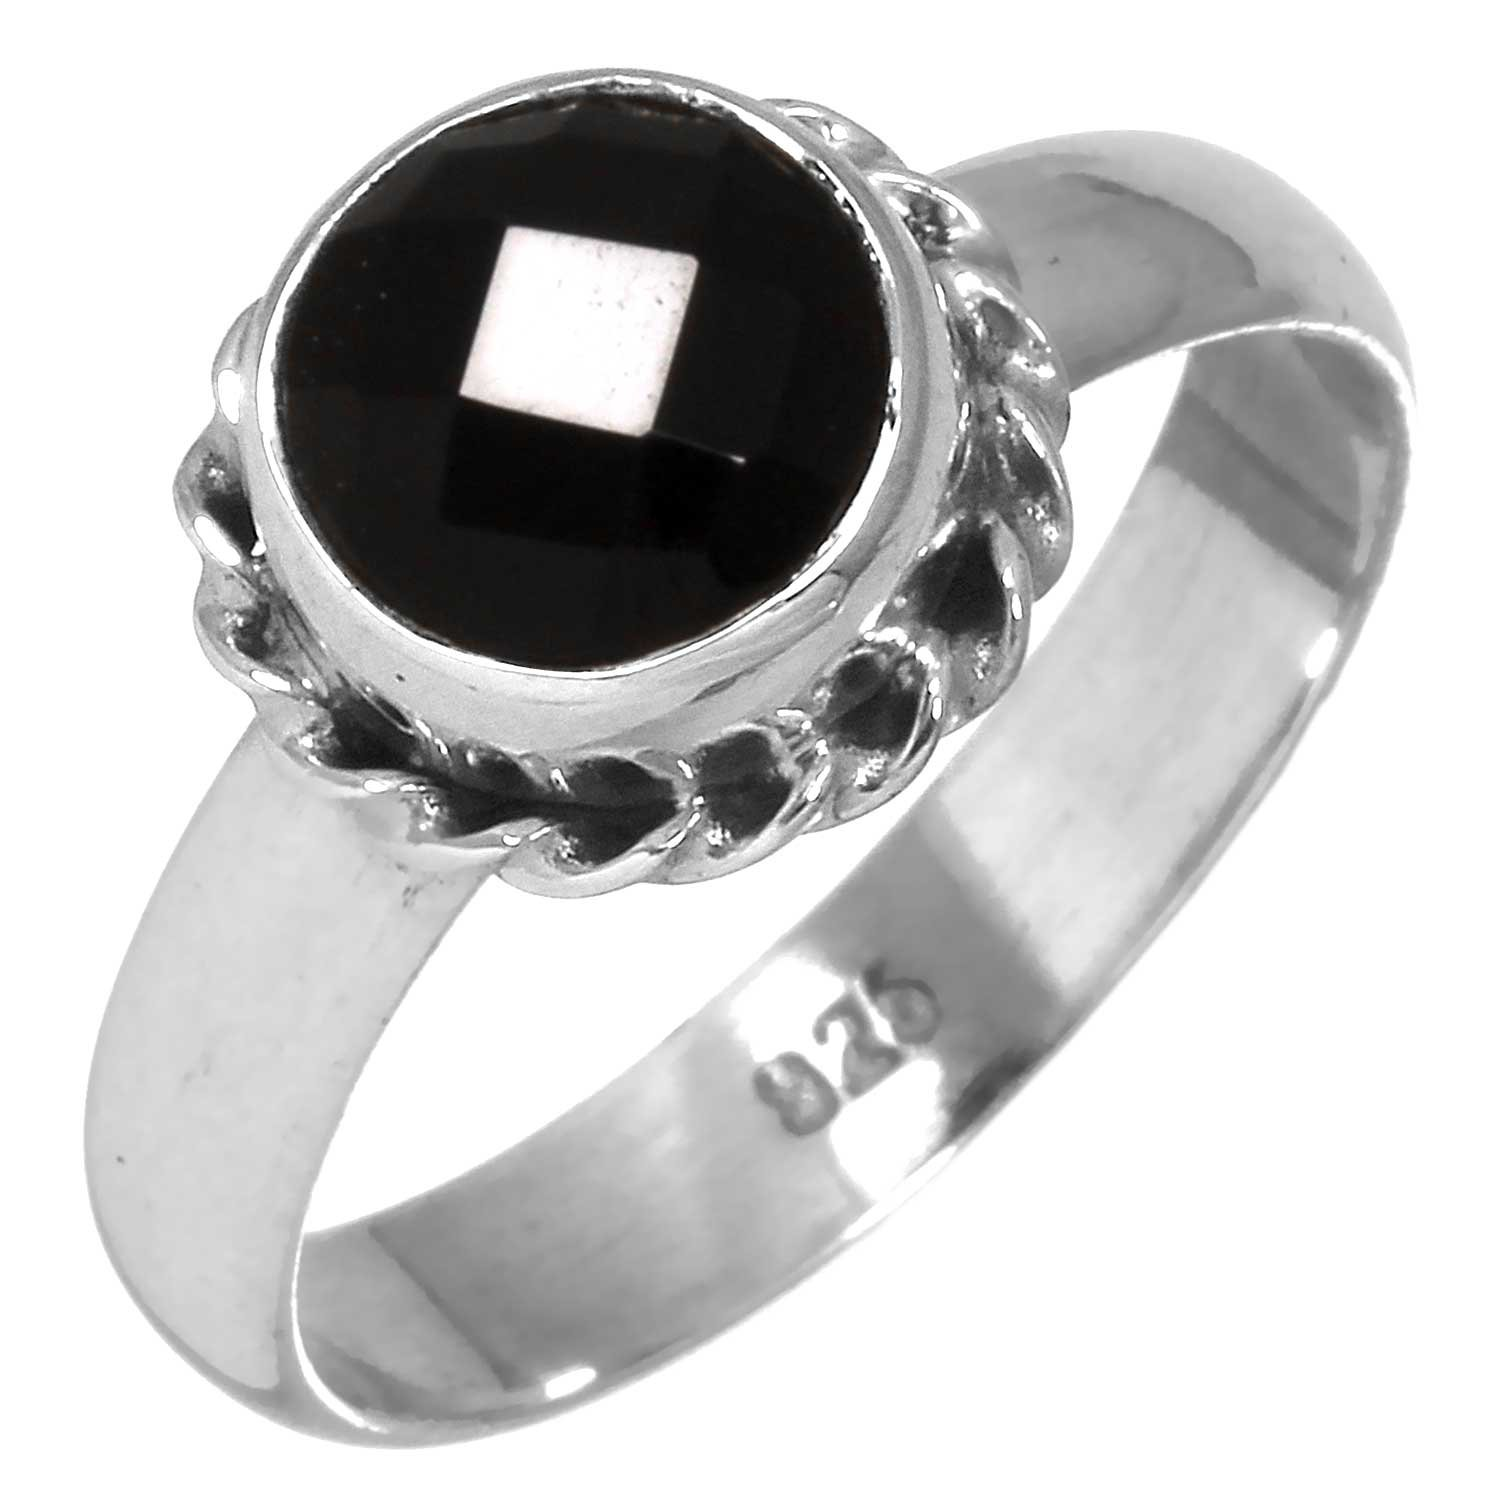 Genuine Black Onyx Gemstone Ring Solid 925 Sterling Silver Jewelry Size 7